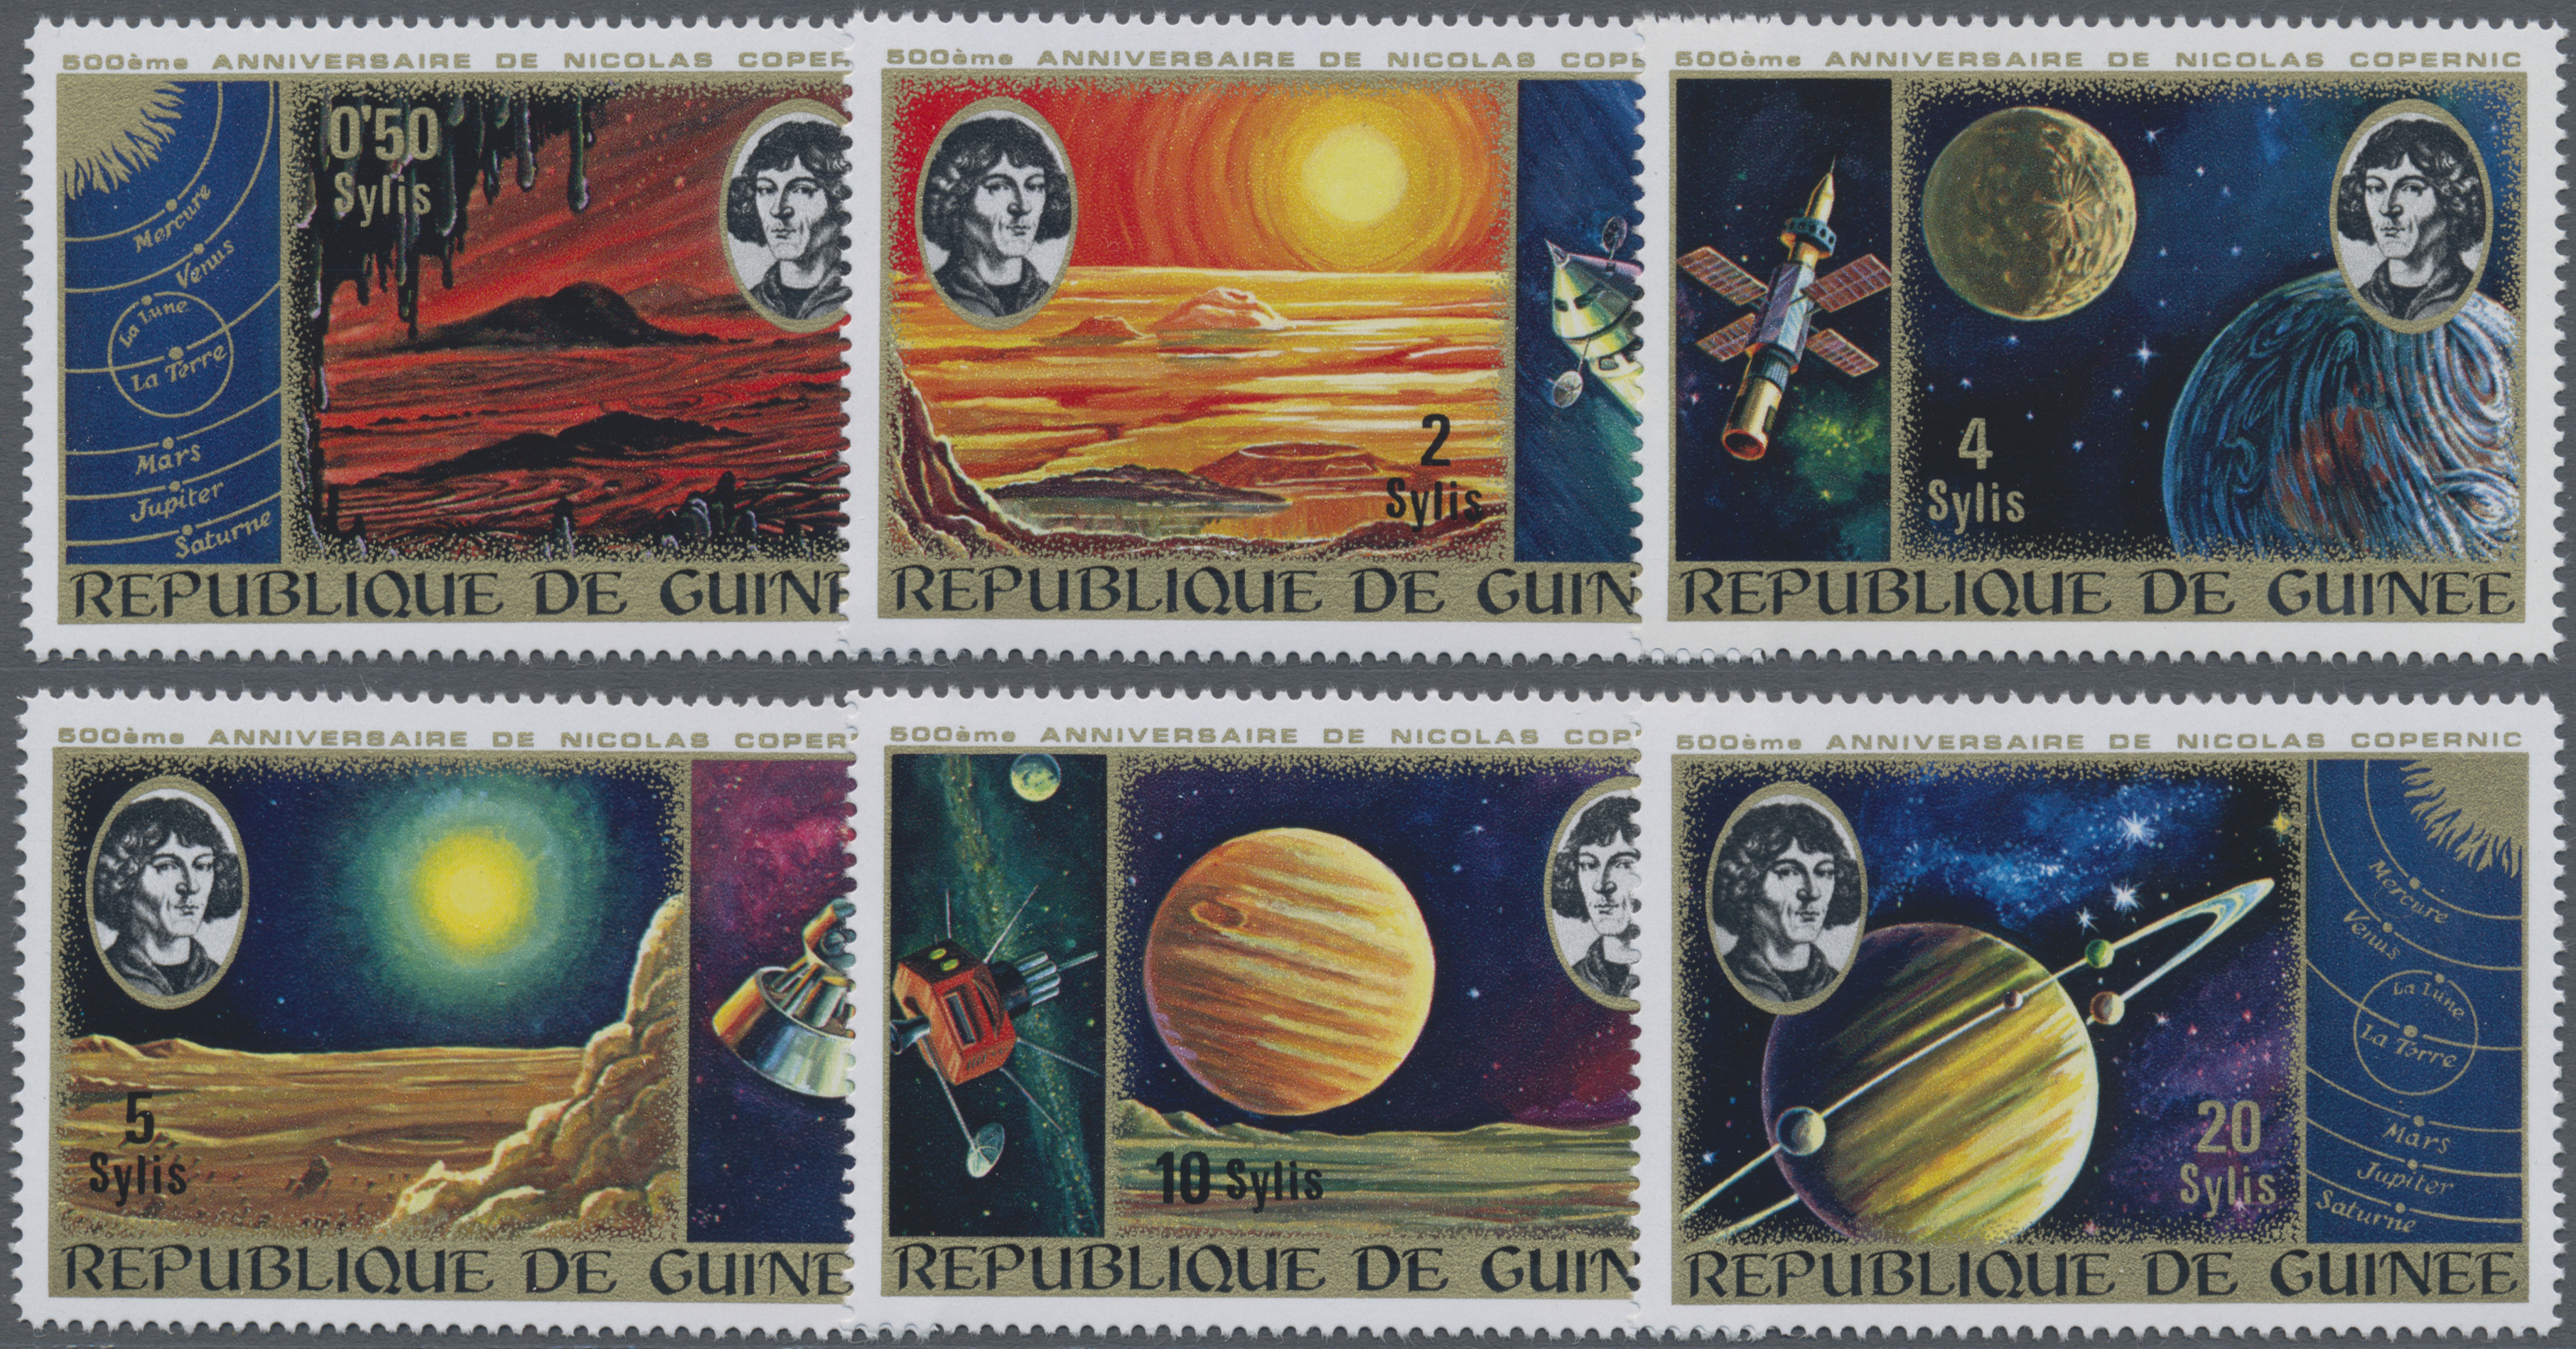 Lot 06221 - thematik: astronomie / astronomy  -  Auktionshaus Christoph Gärtner GmbH & Co. KG Special Auction 26.- 28. May 2020 Day 3 Collections - Thematics and Picture Post Cards